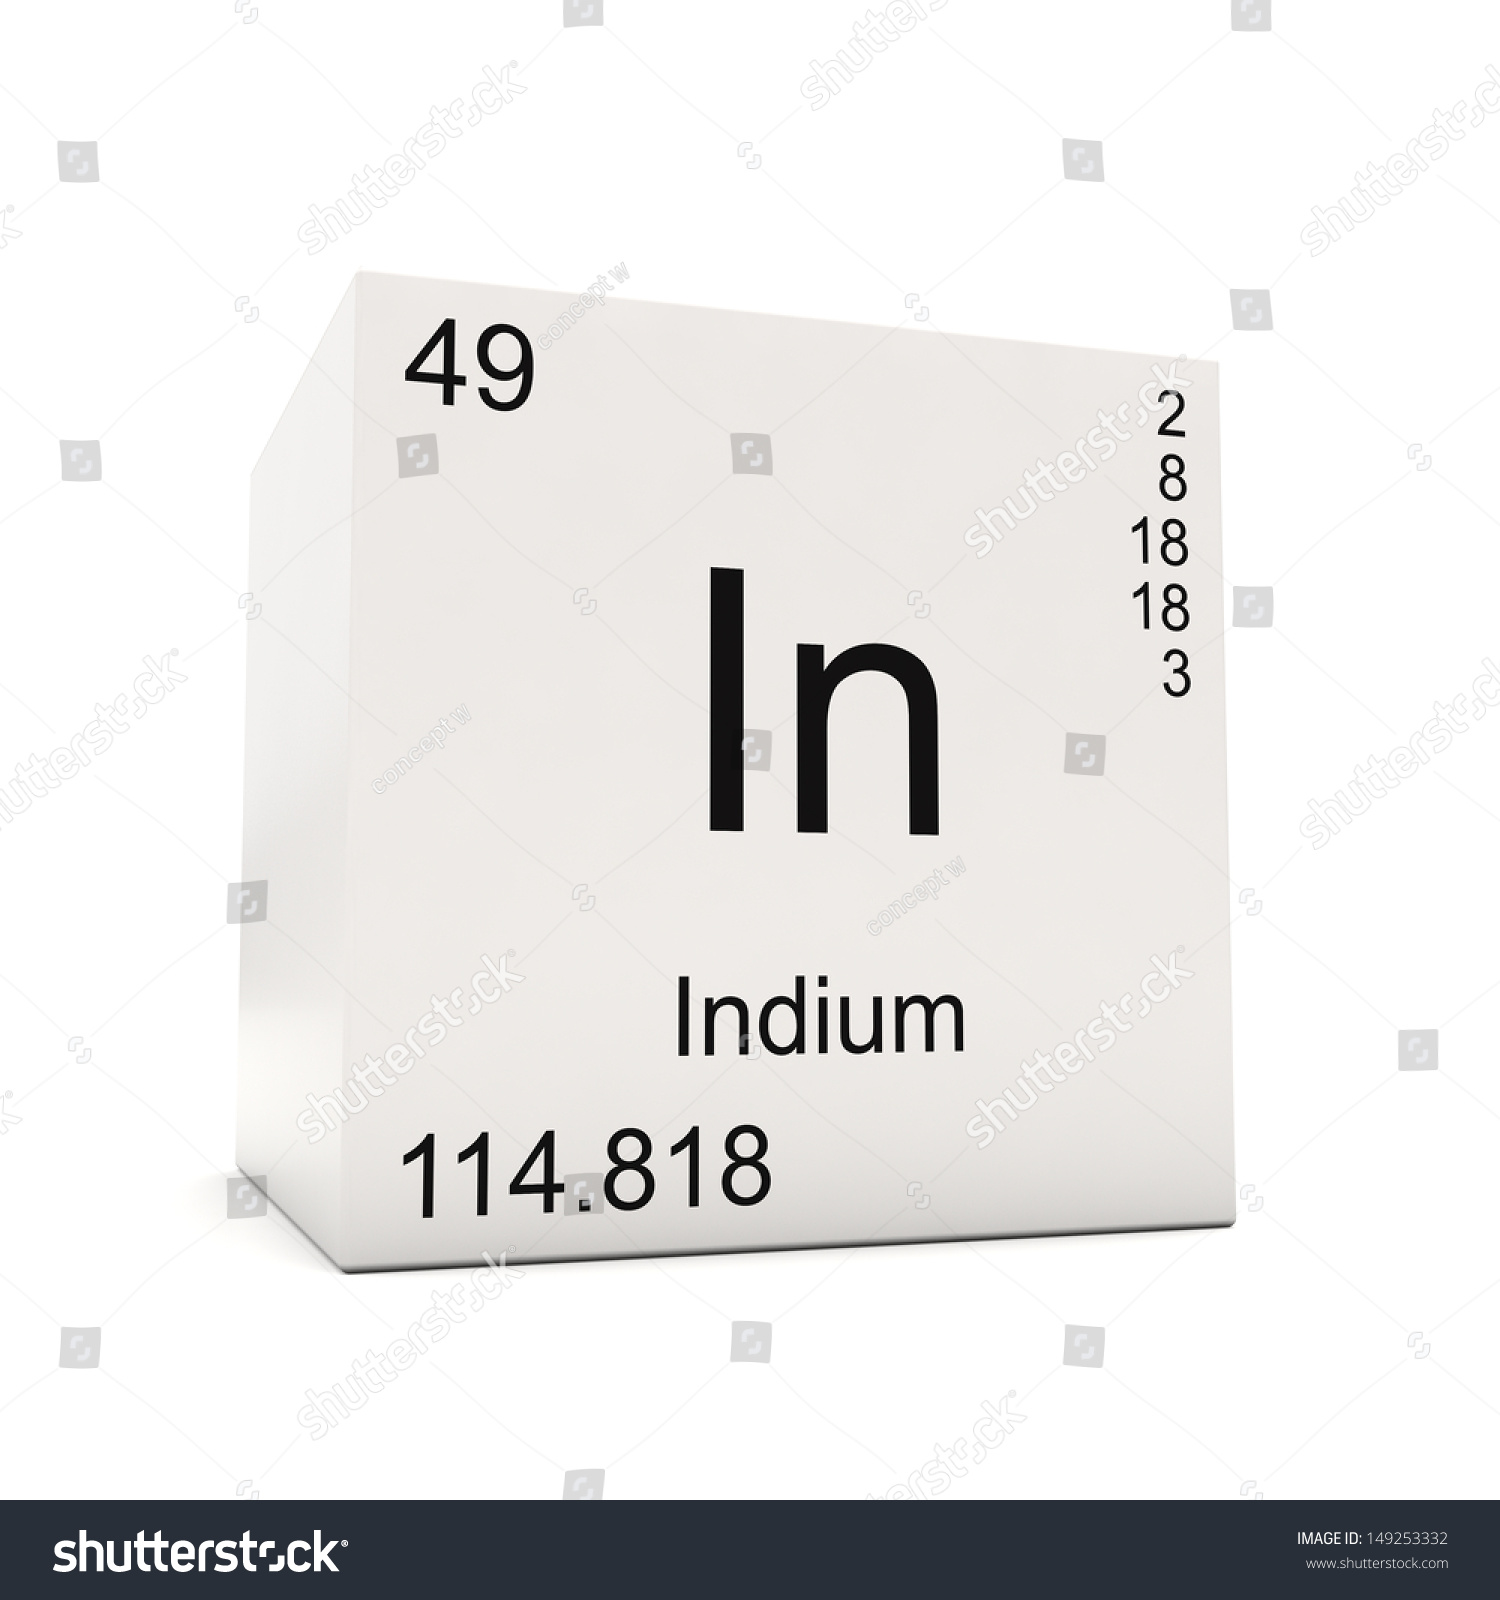 Indium on the periodic table image collections periodic table images cube indium element periodic table isolated stock illustration cube of indium element of the periodic table gamestrikefo Image collections